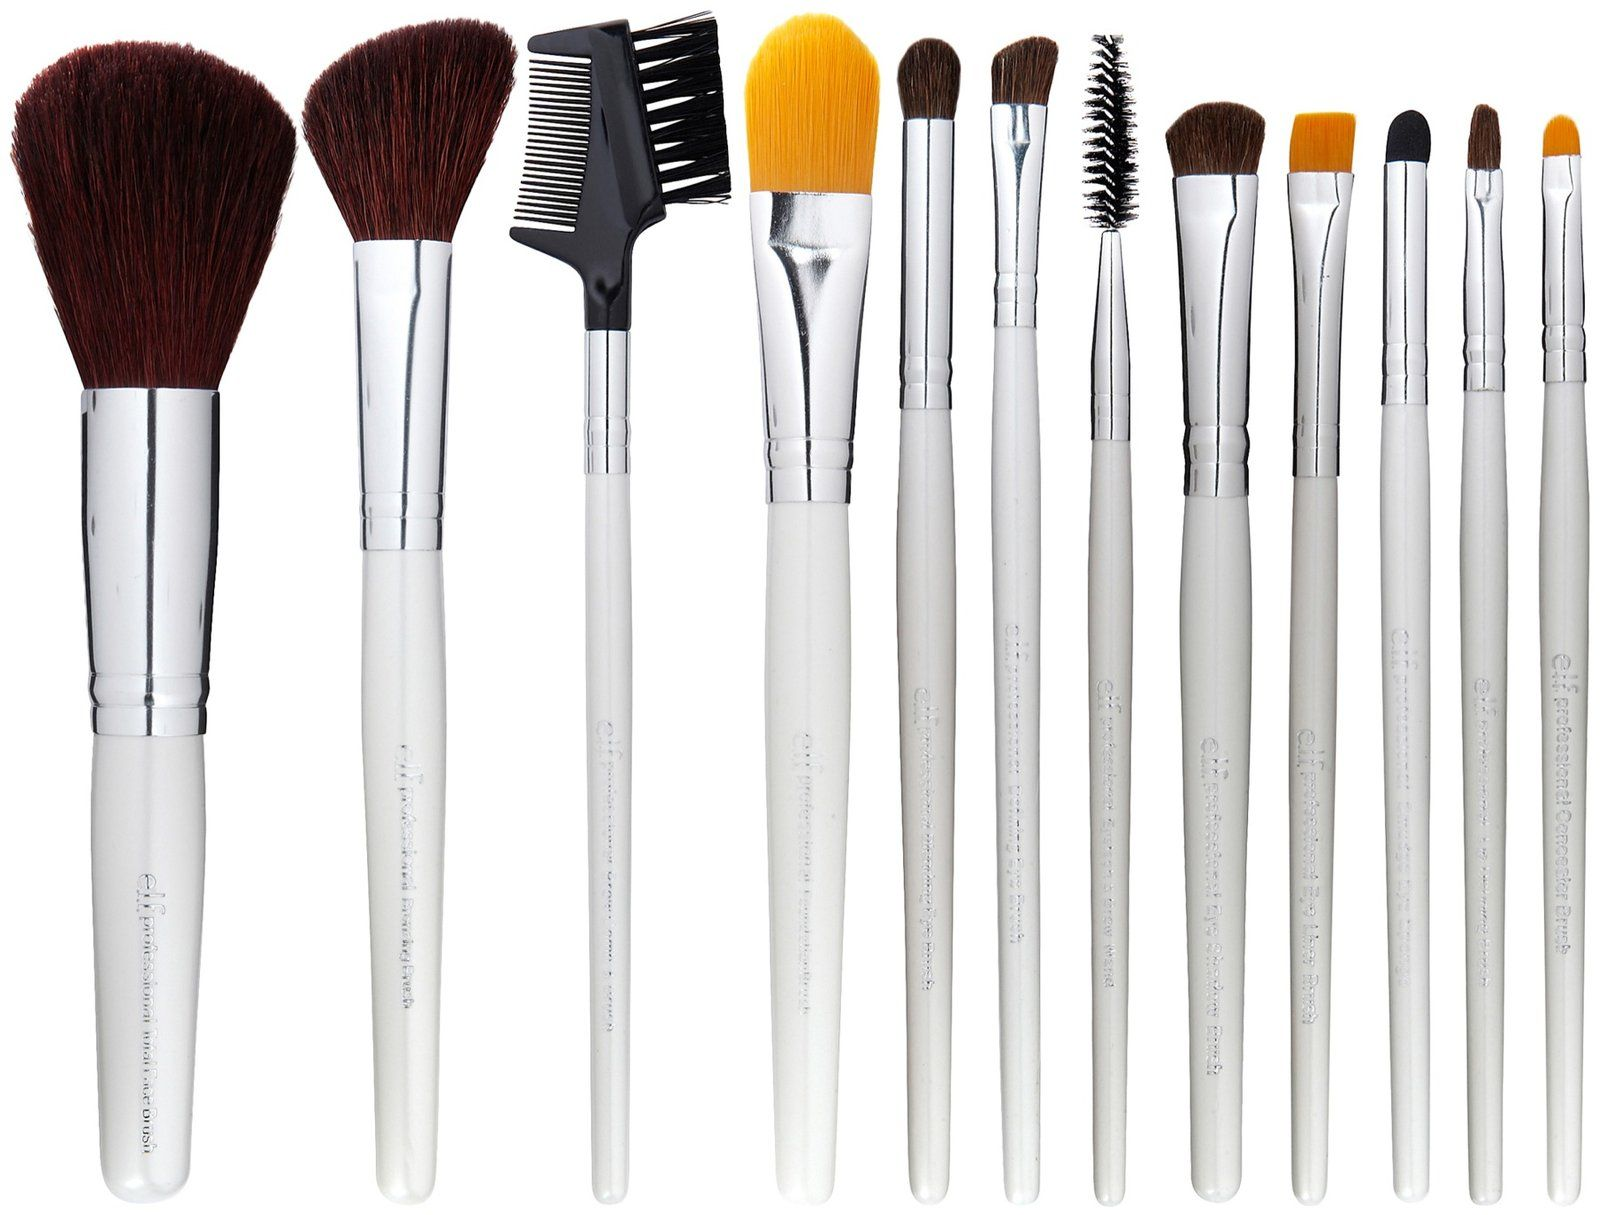 Elf 12pc Essential Brush Set Makeup Brush Set Elf Makeup Brushes Cheap Makeup Brushes Set